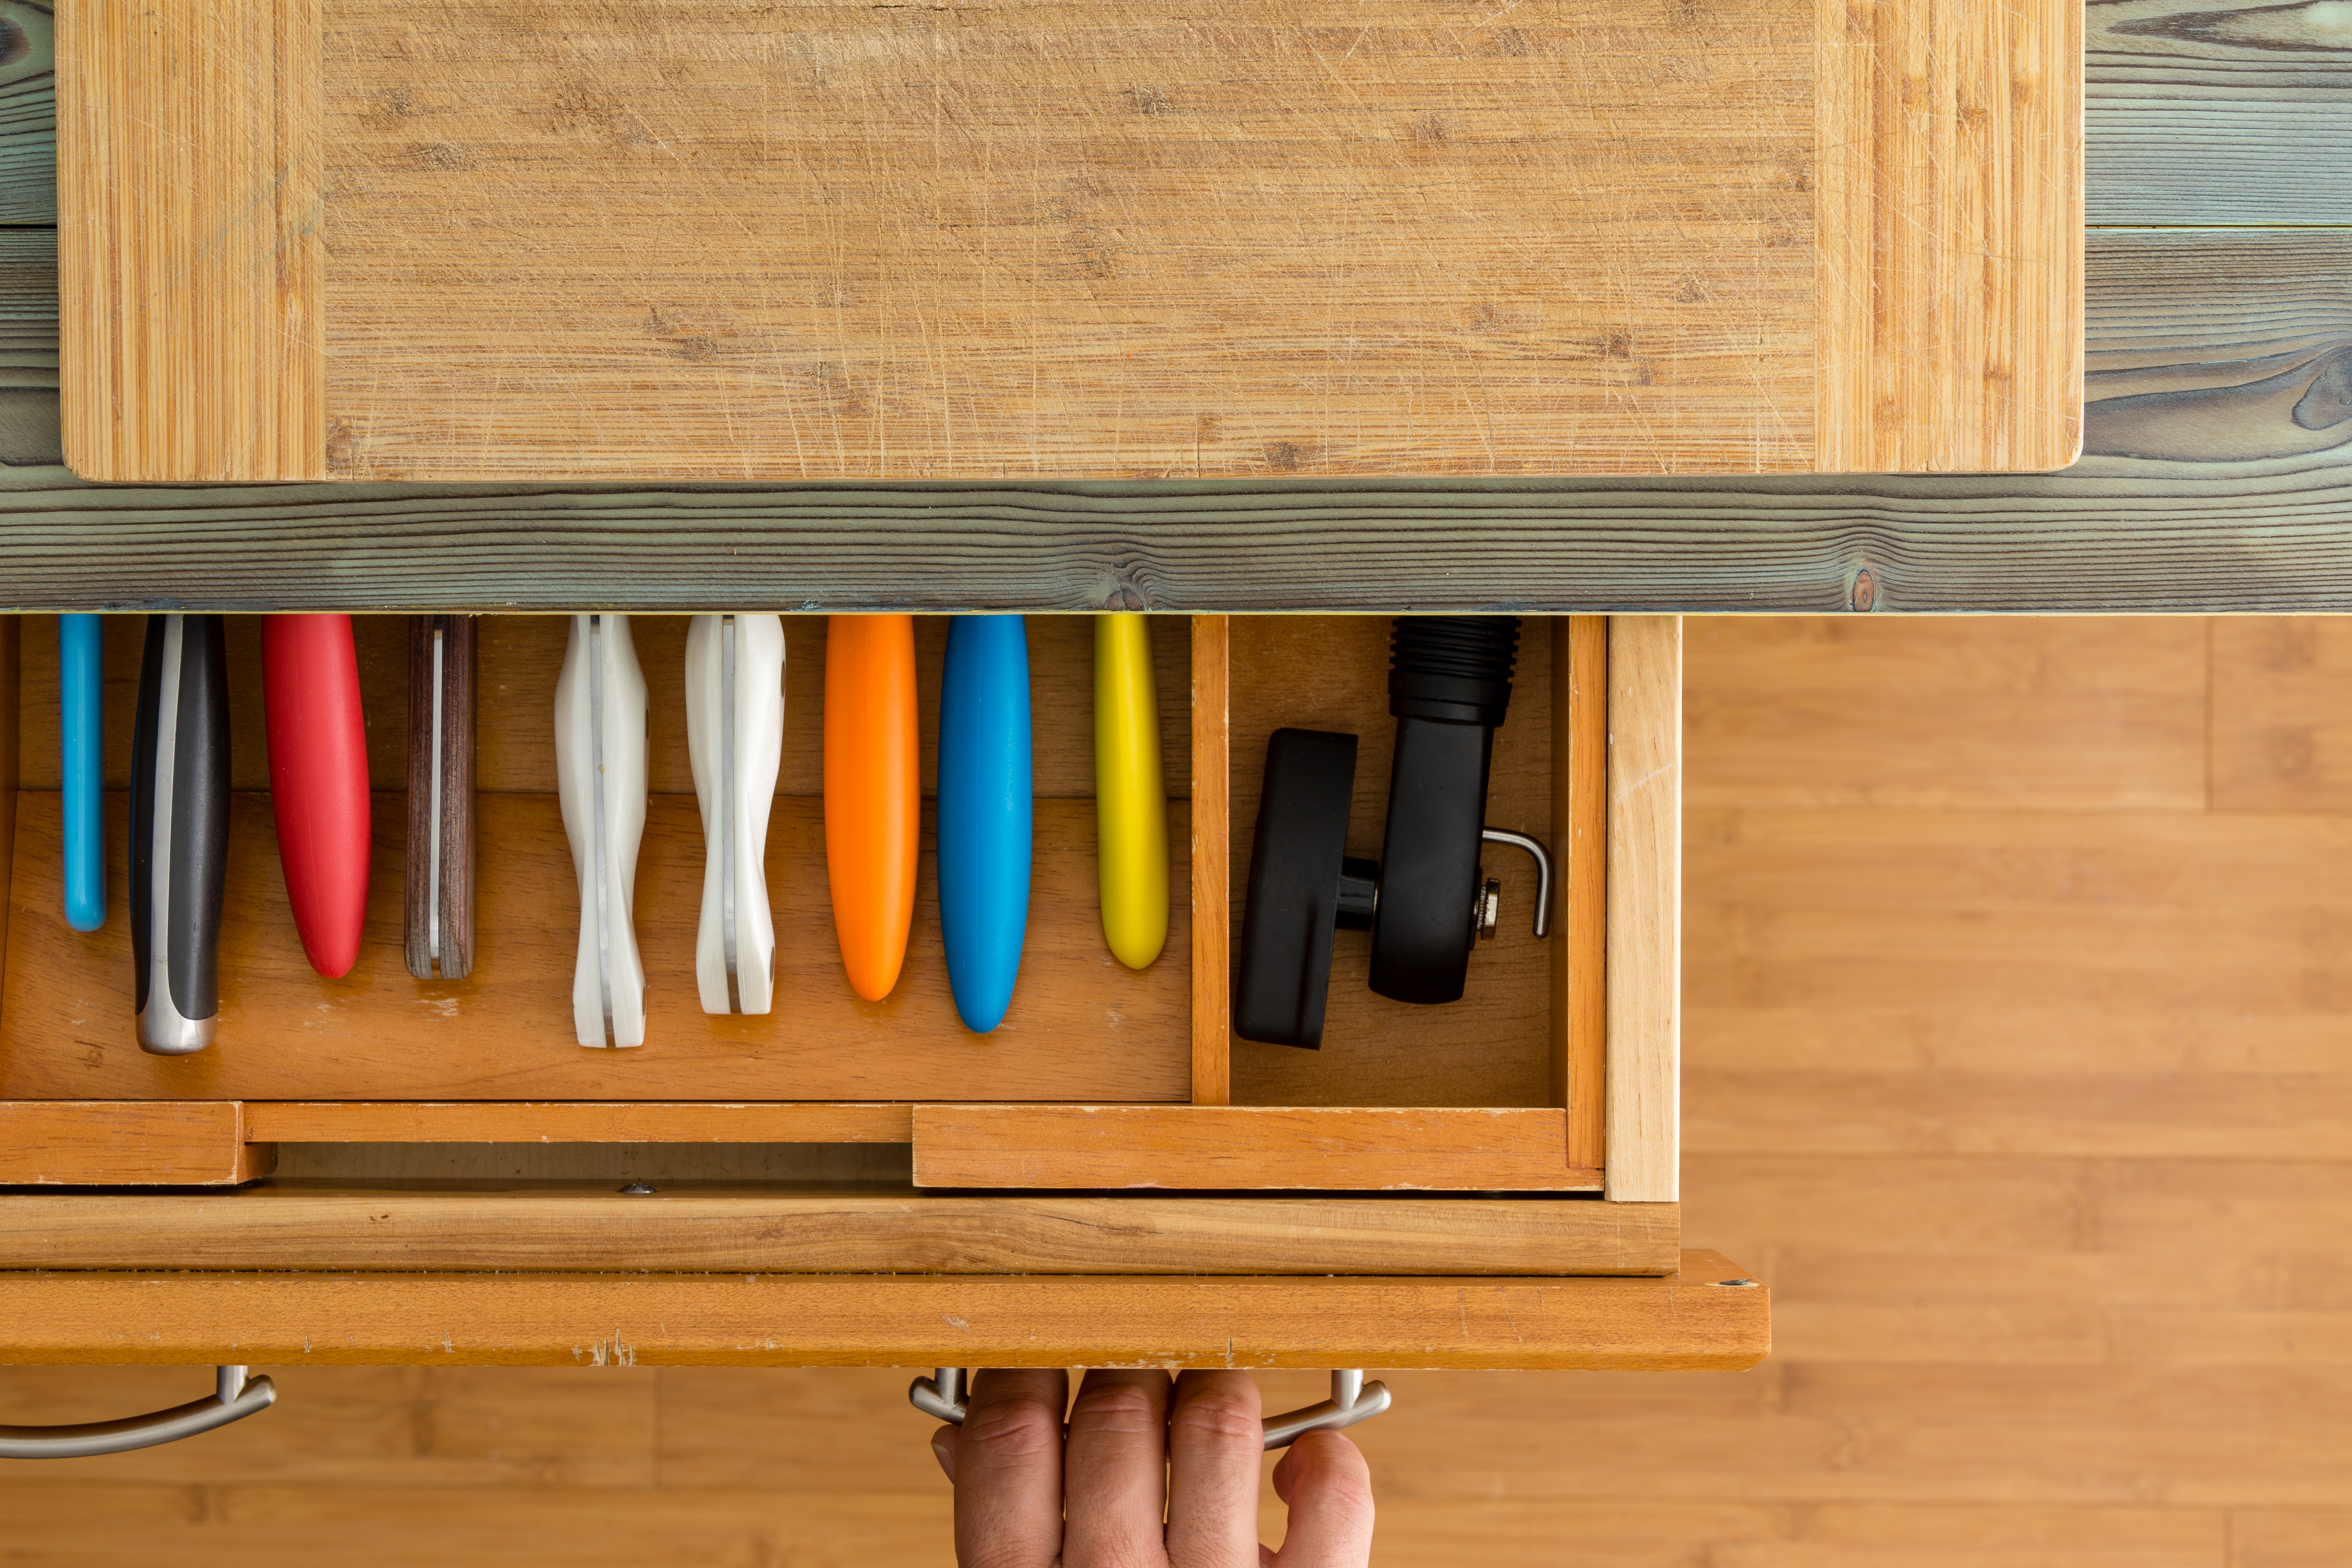 Man or chef opening a knife drawer in a kitchen